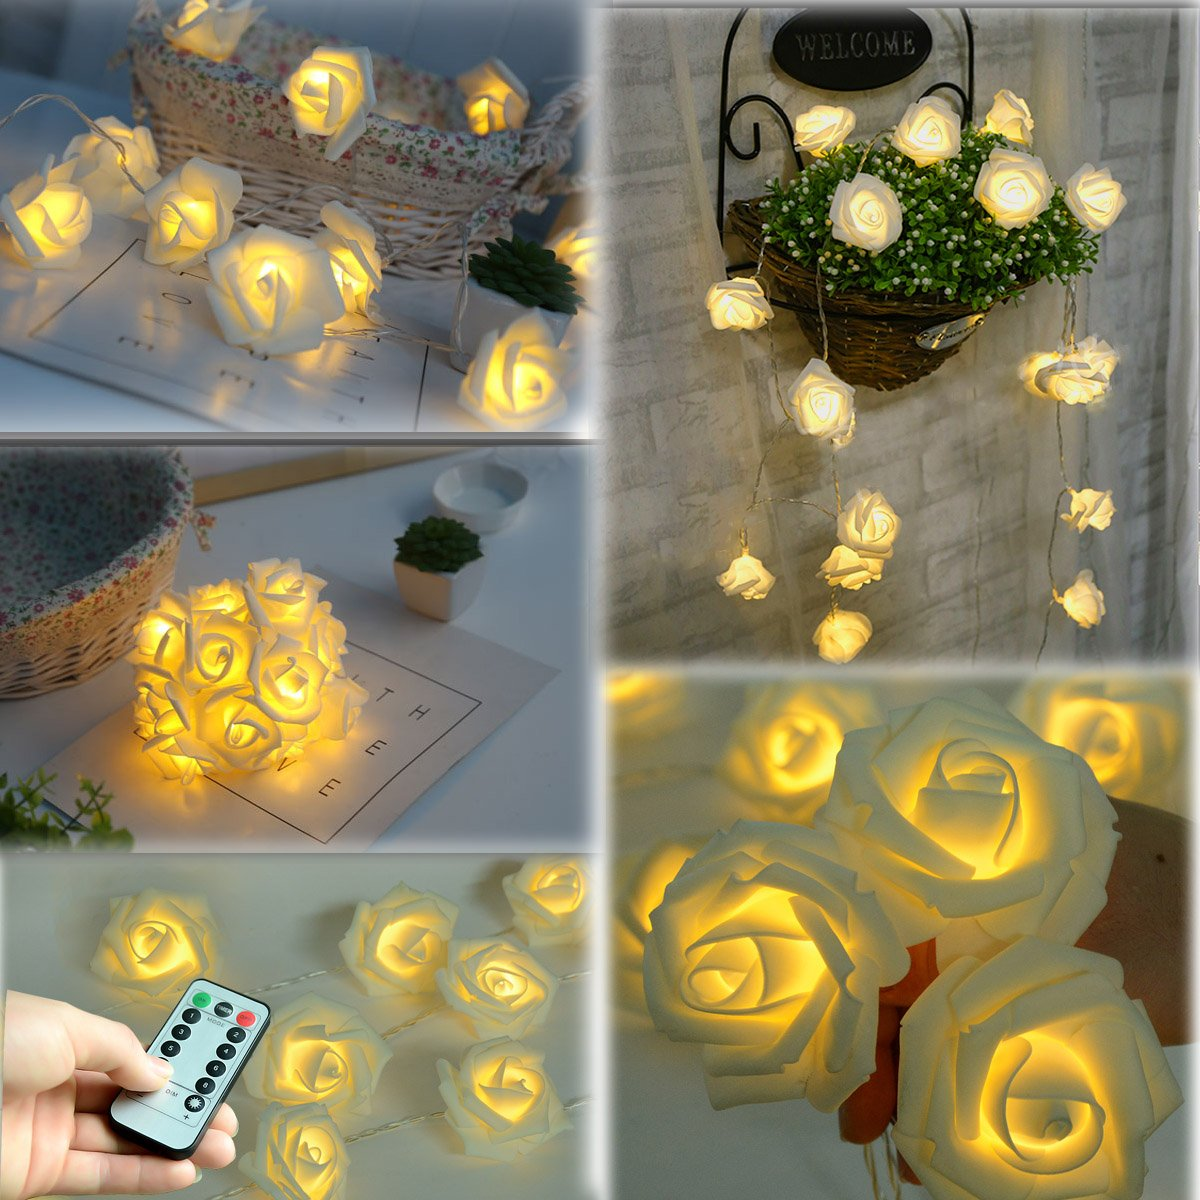 Fairy String Lights Blue Rose Flower 20 LED Battery Operated Decorative Light for Wedding Valentines Day Dreamlike Party Girls Bedroom Patio, Lawn & Garden Outdoor Décor